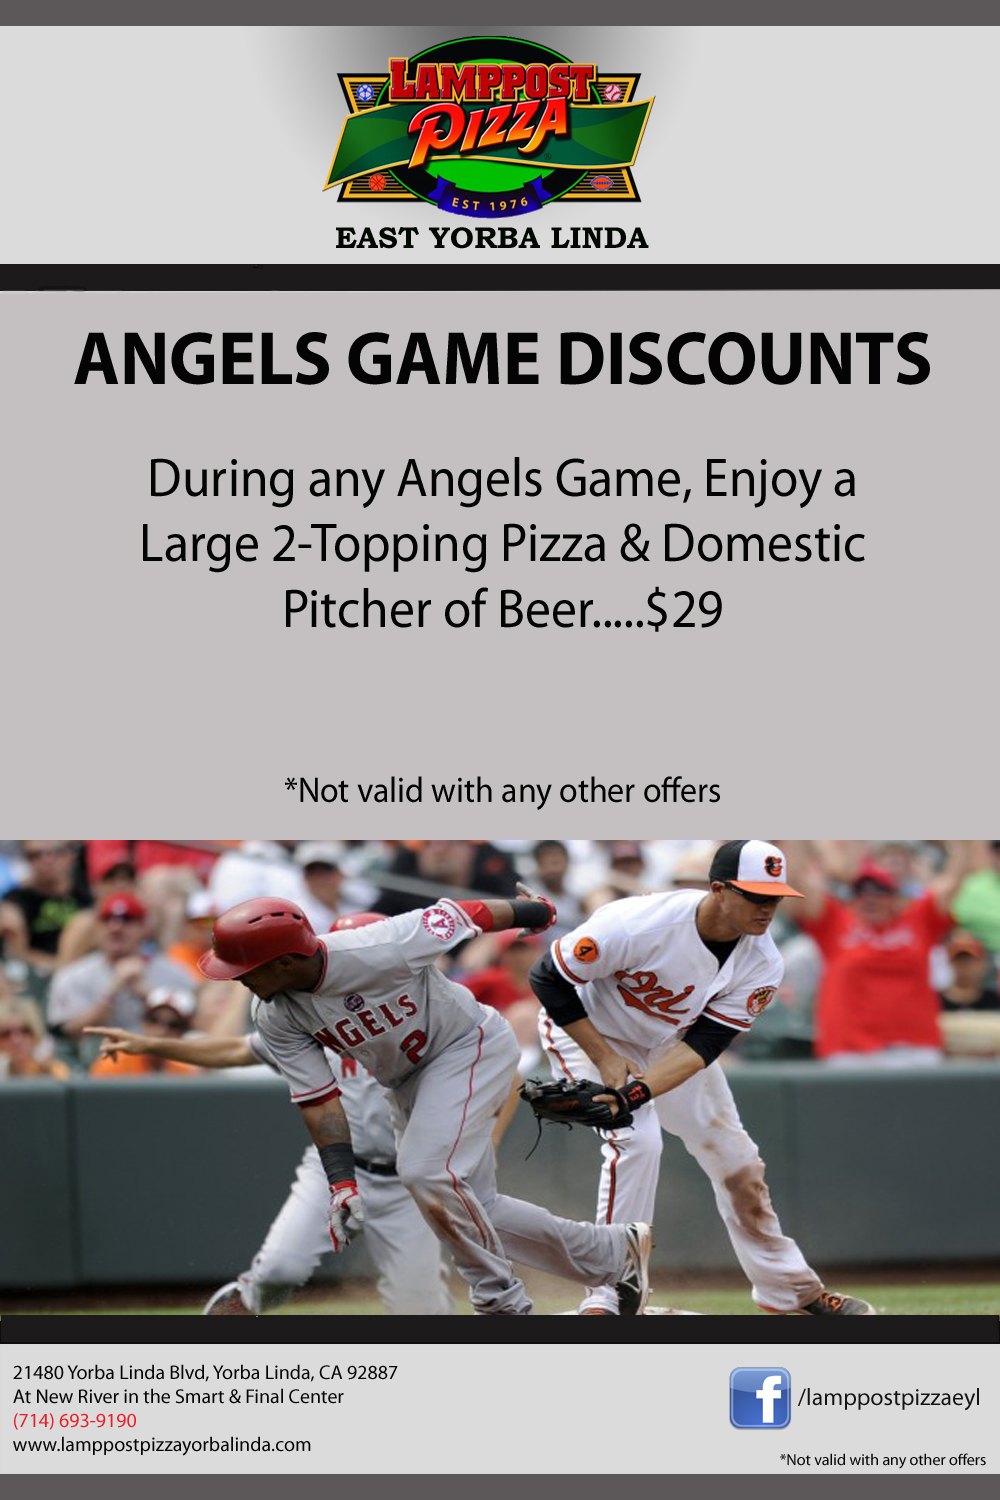 Deals During Angels Games